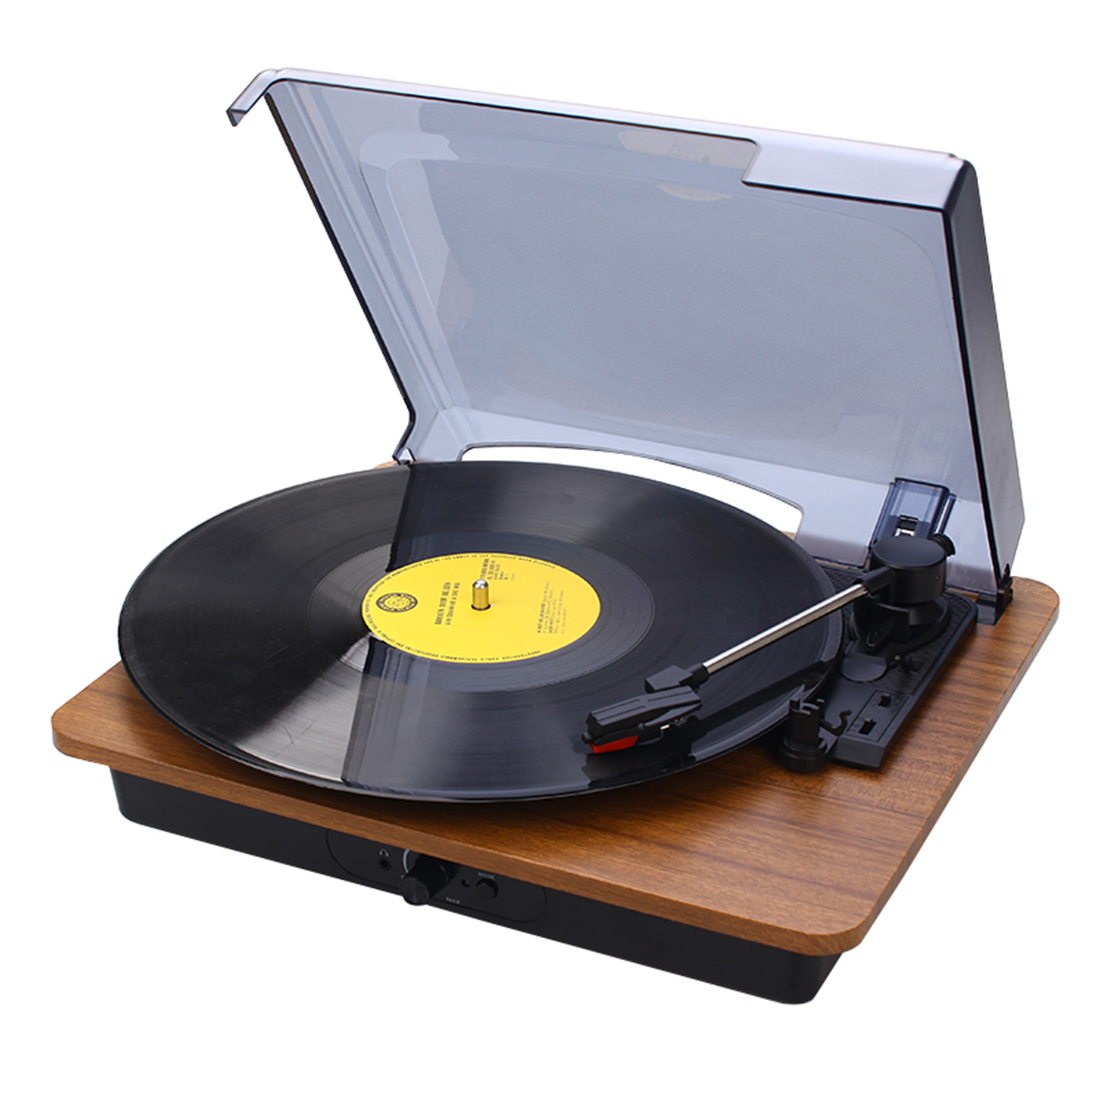 Mini Bluetooth Speaker Vinyl Record Player Protable Vintage Phonograph Turntables Drop Shipping - Redwood Color image